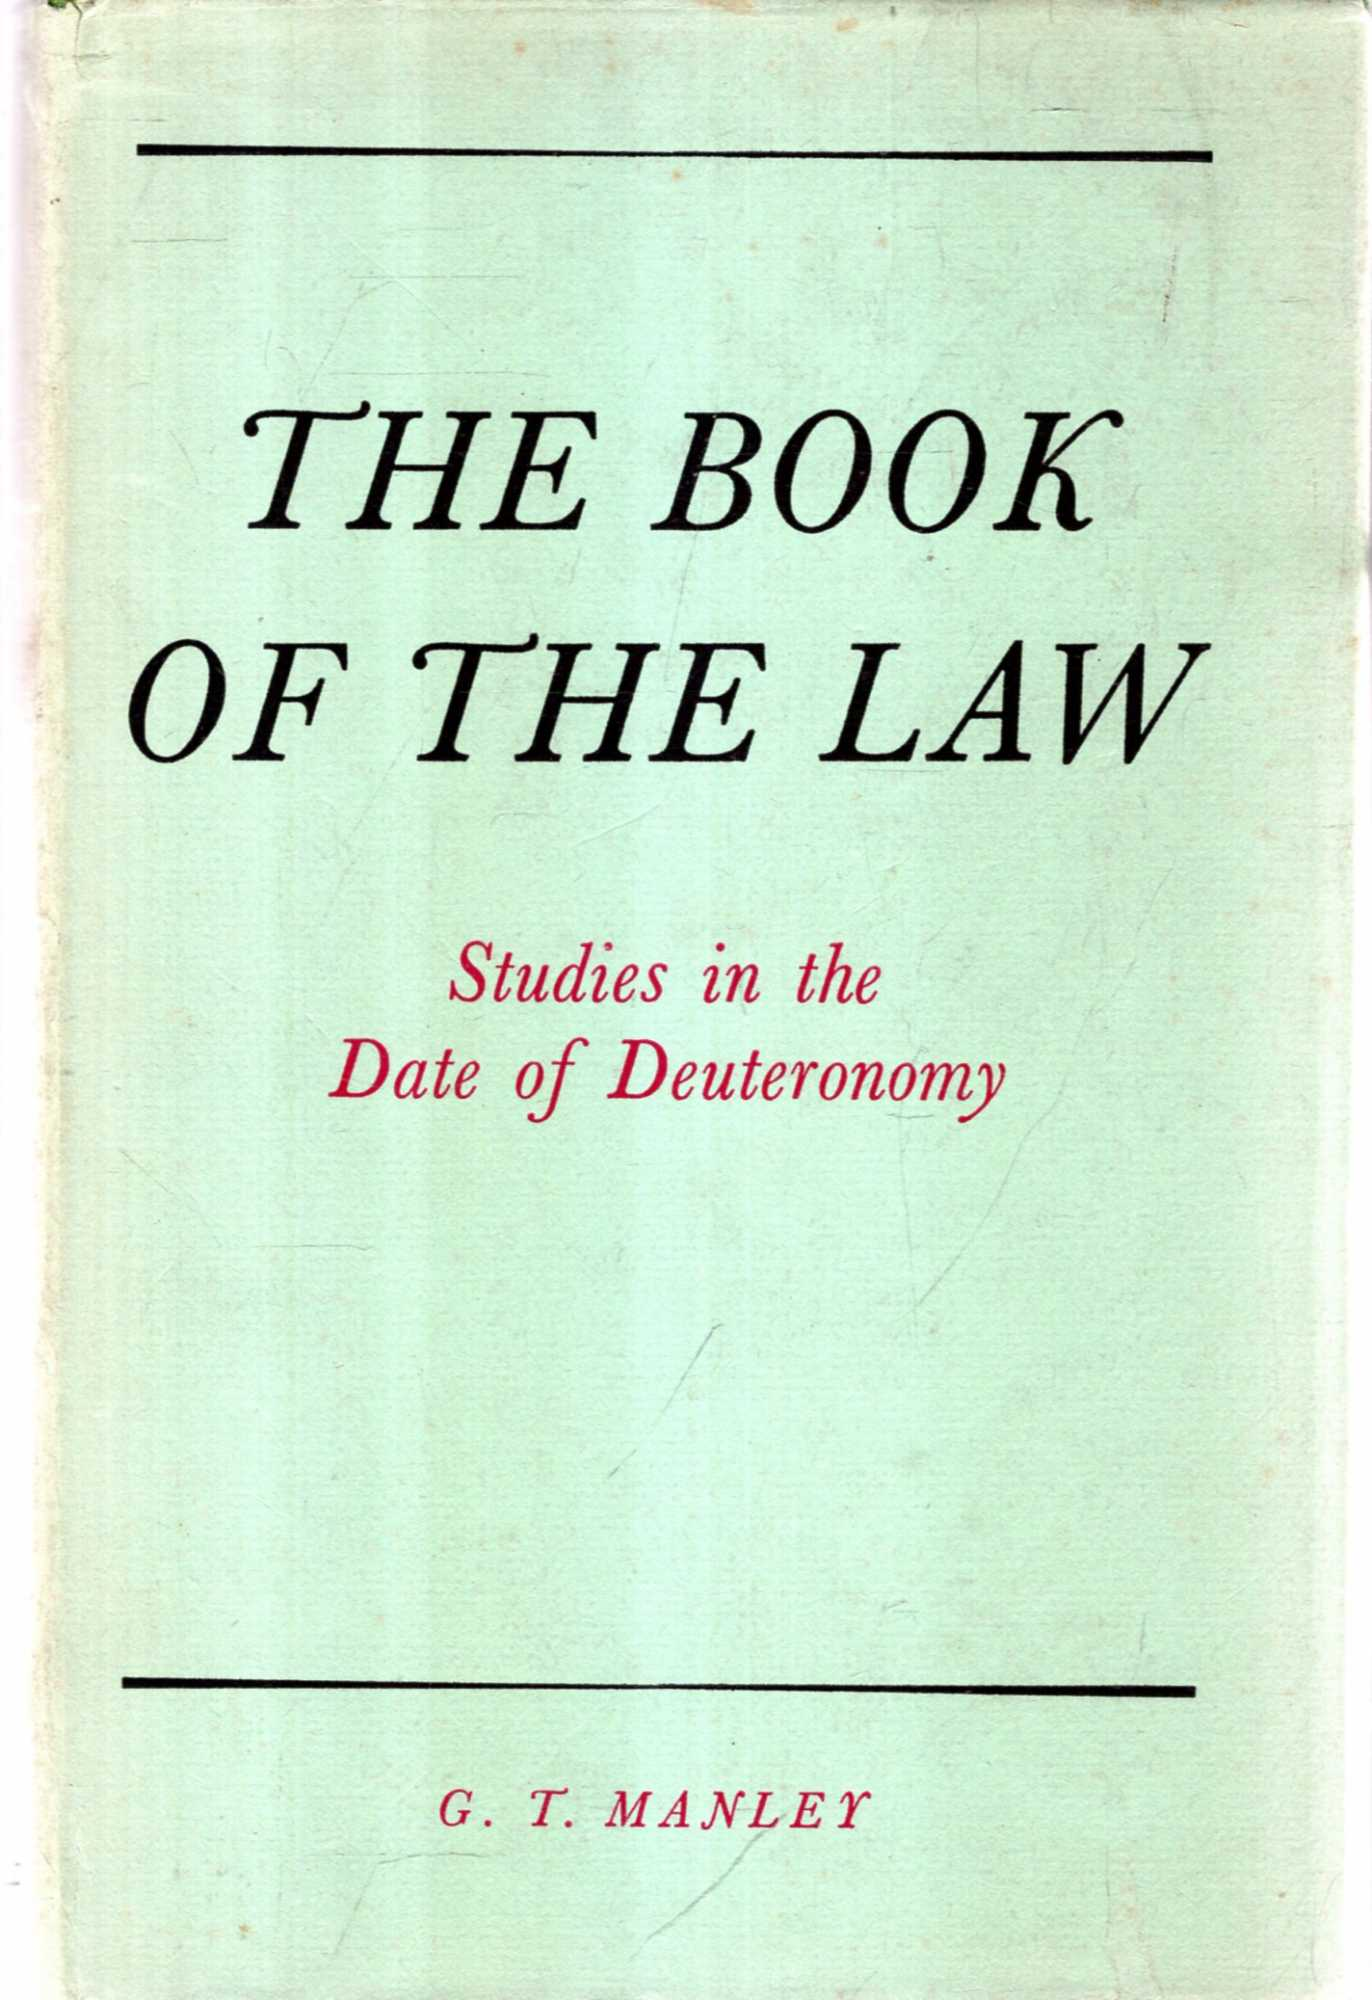 Image for The Book of the Law : Studies in the Date of Deuteronomy